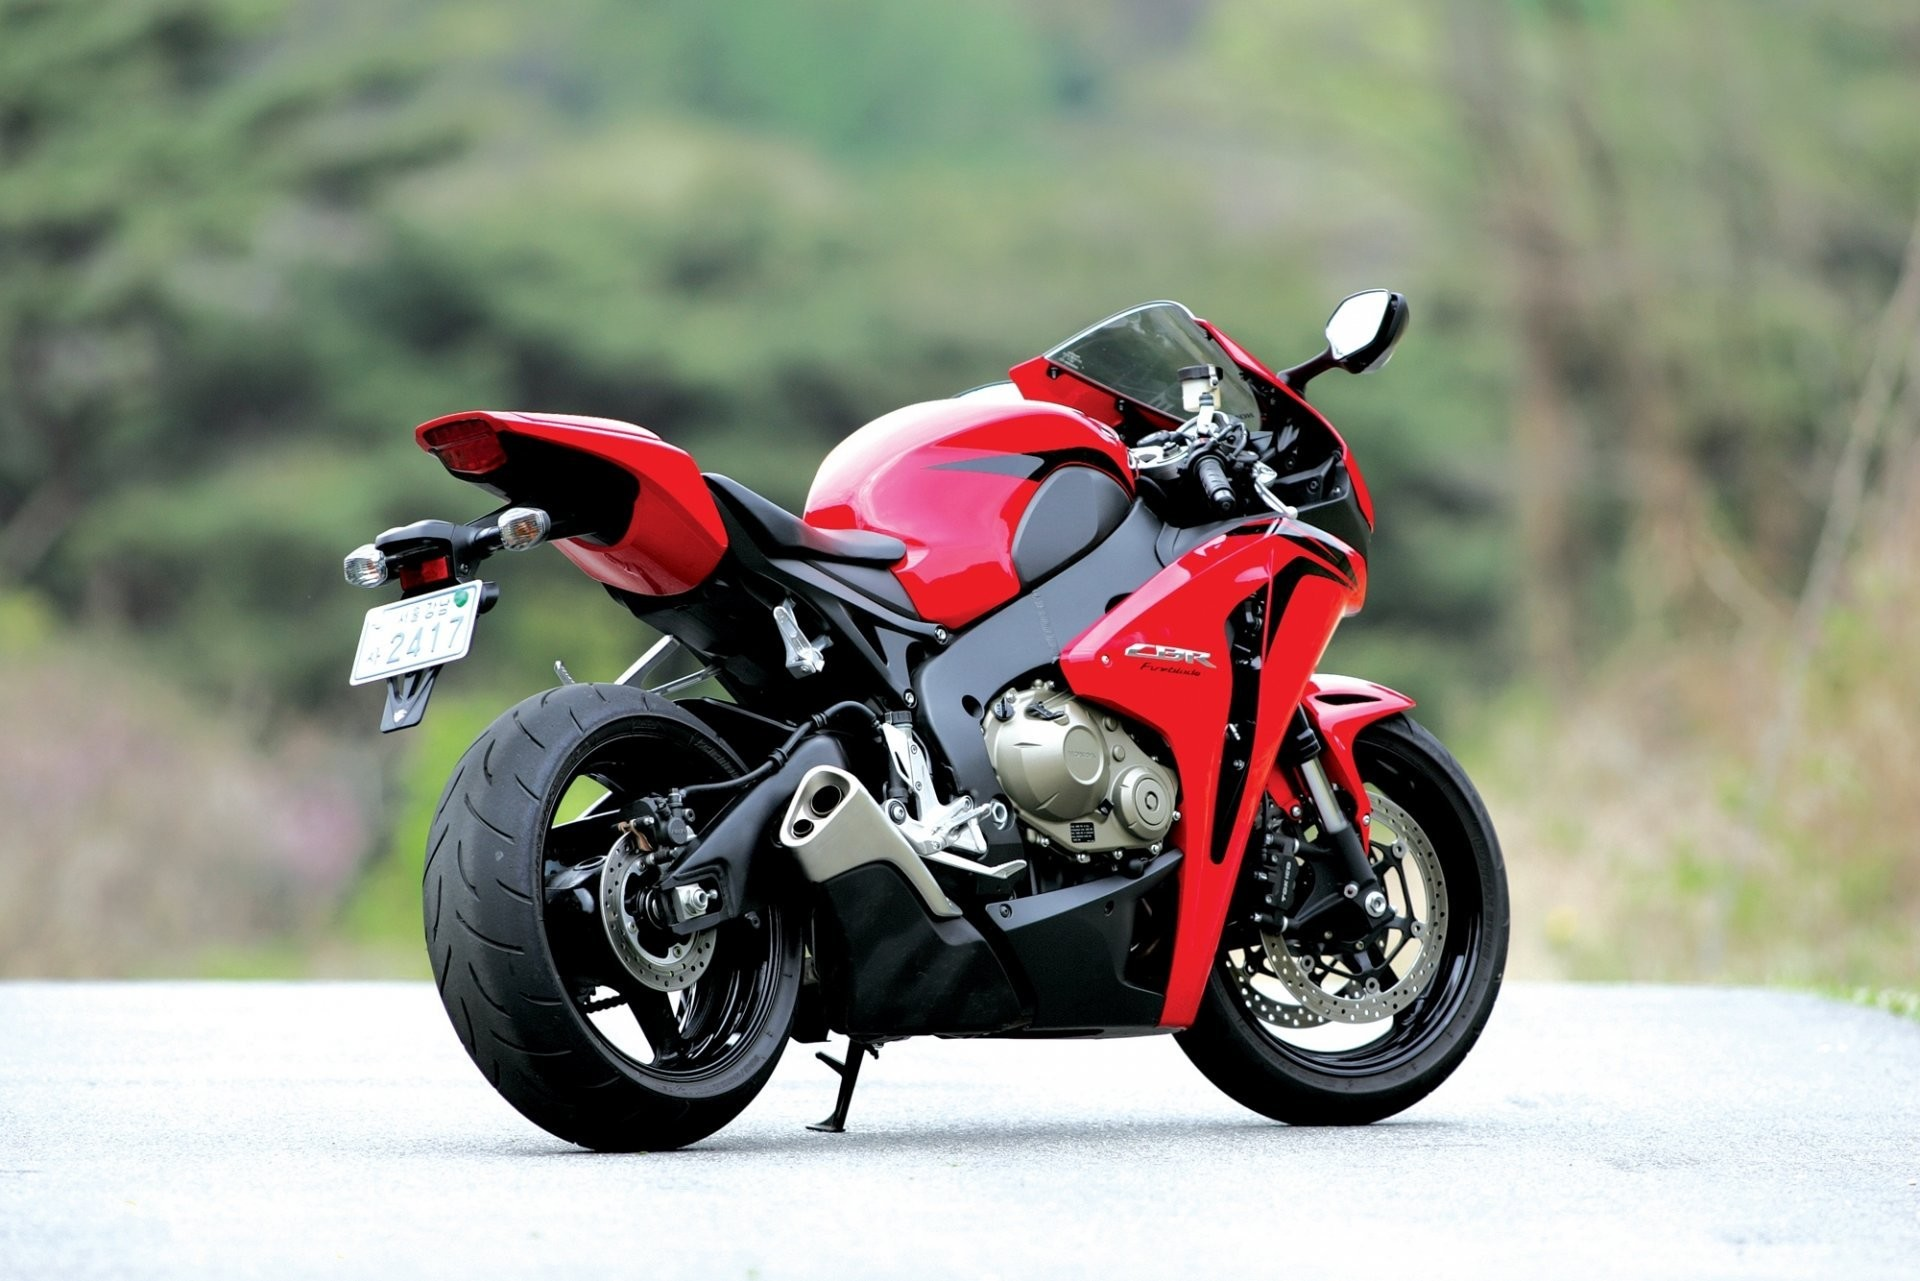 Res: 1920x1281, honda cbr1000rr red bike rear view tailpipe